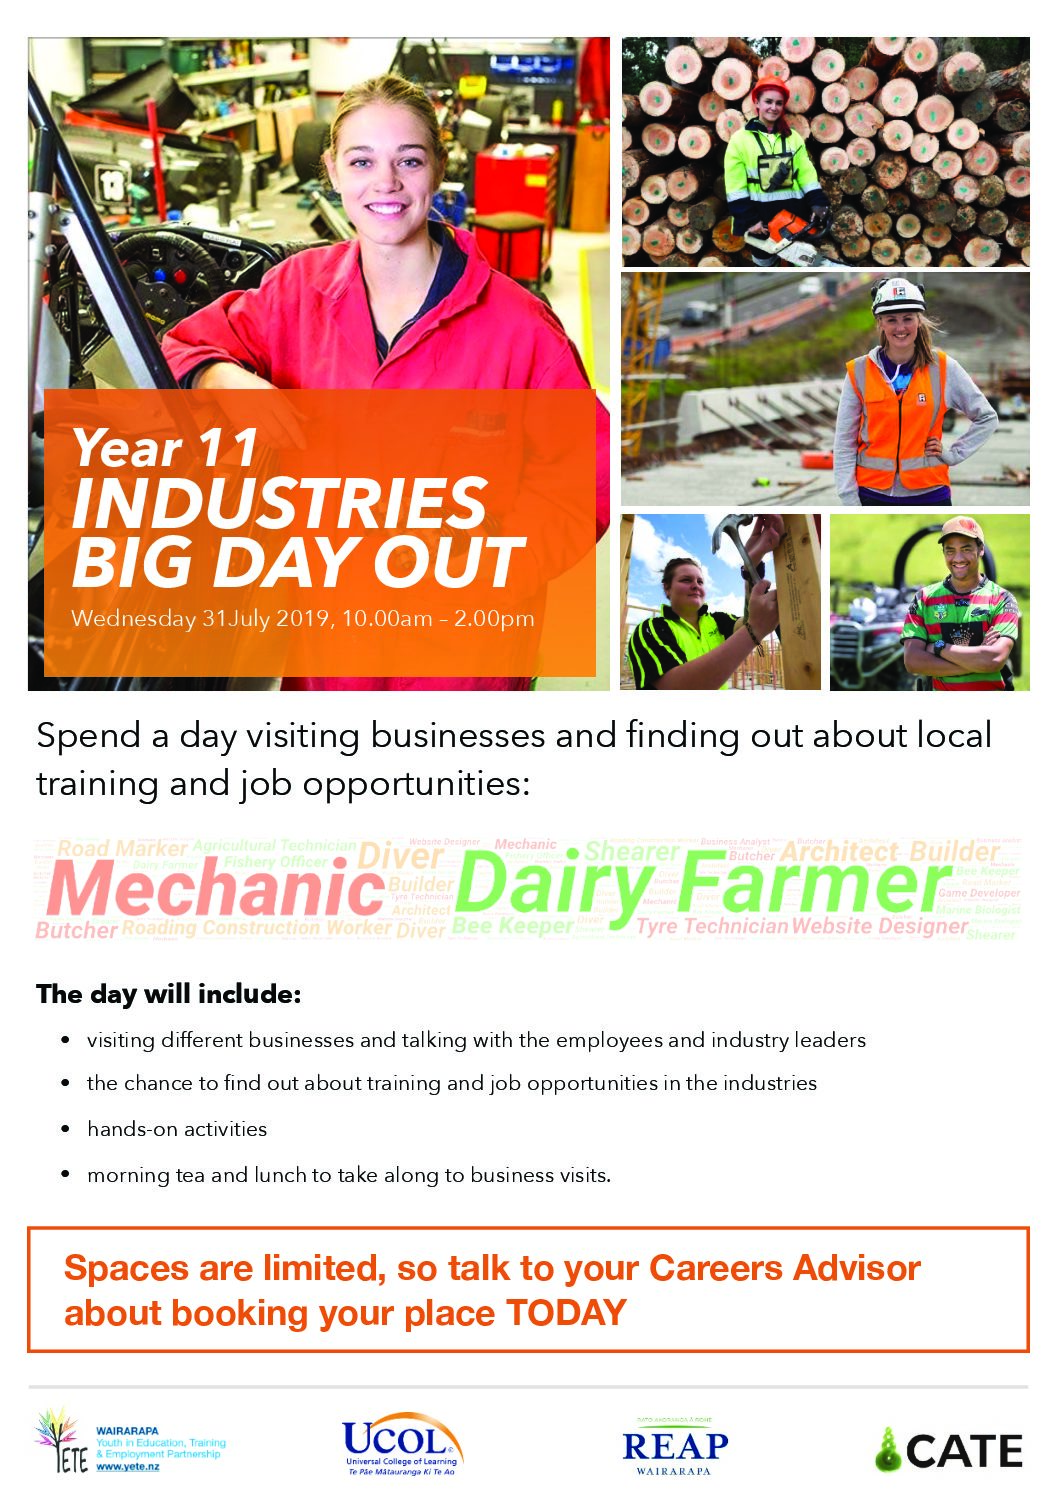 Year 11 Industry Big Day Out – 31 July, 2019